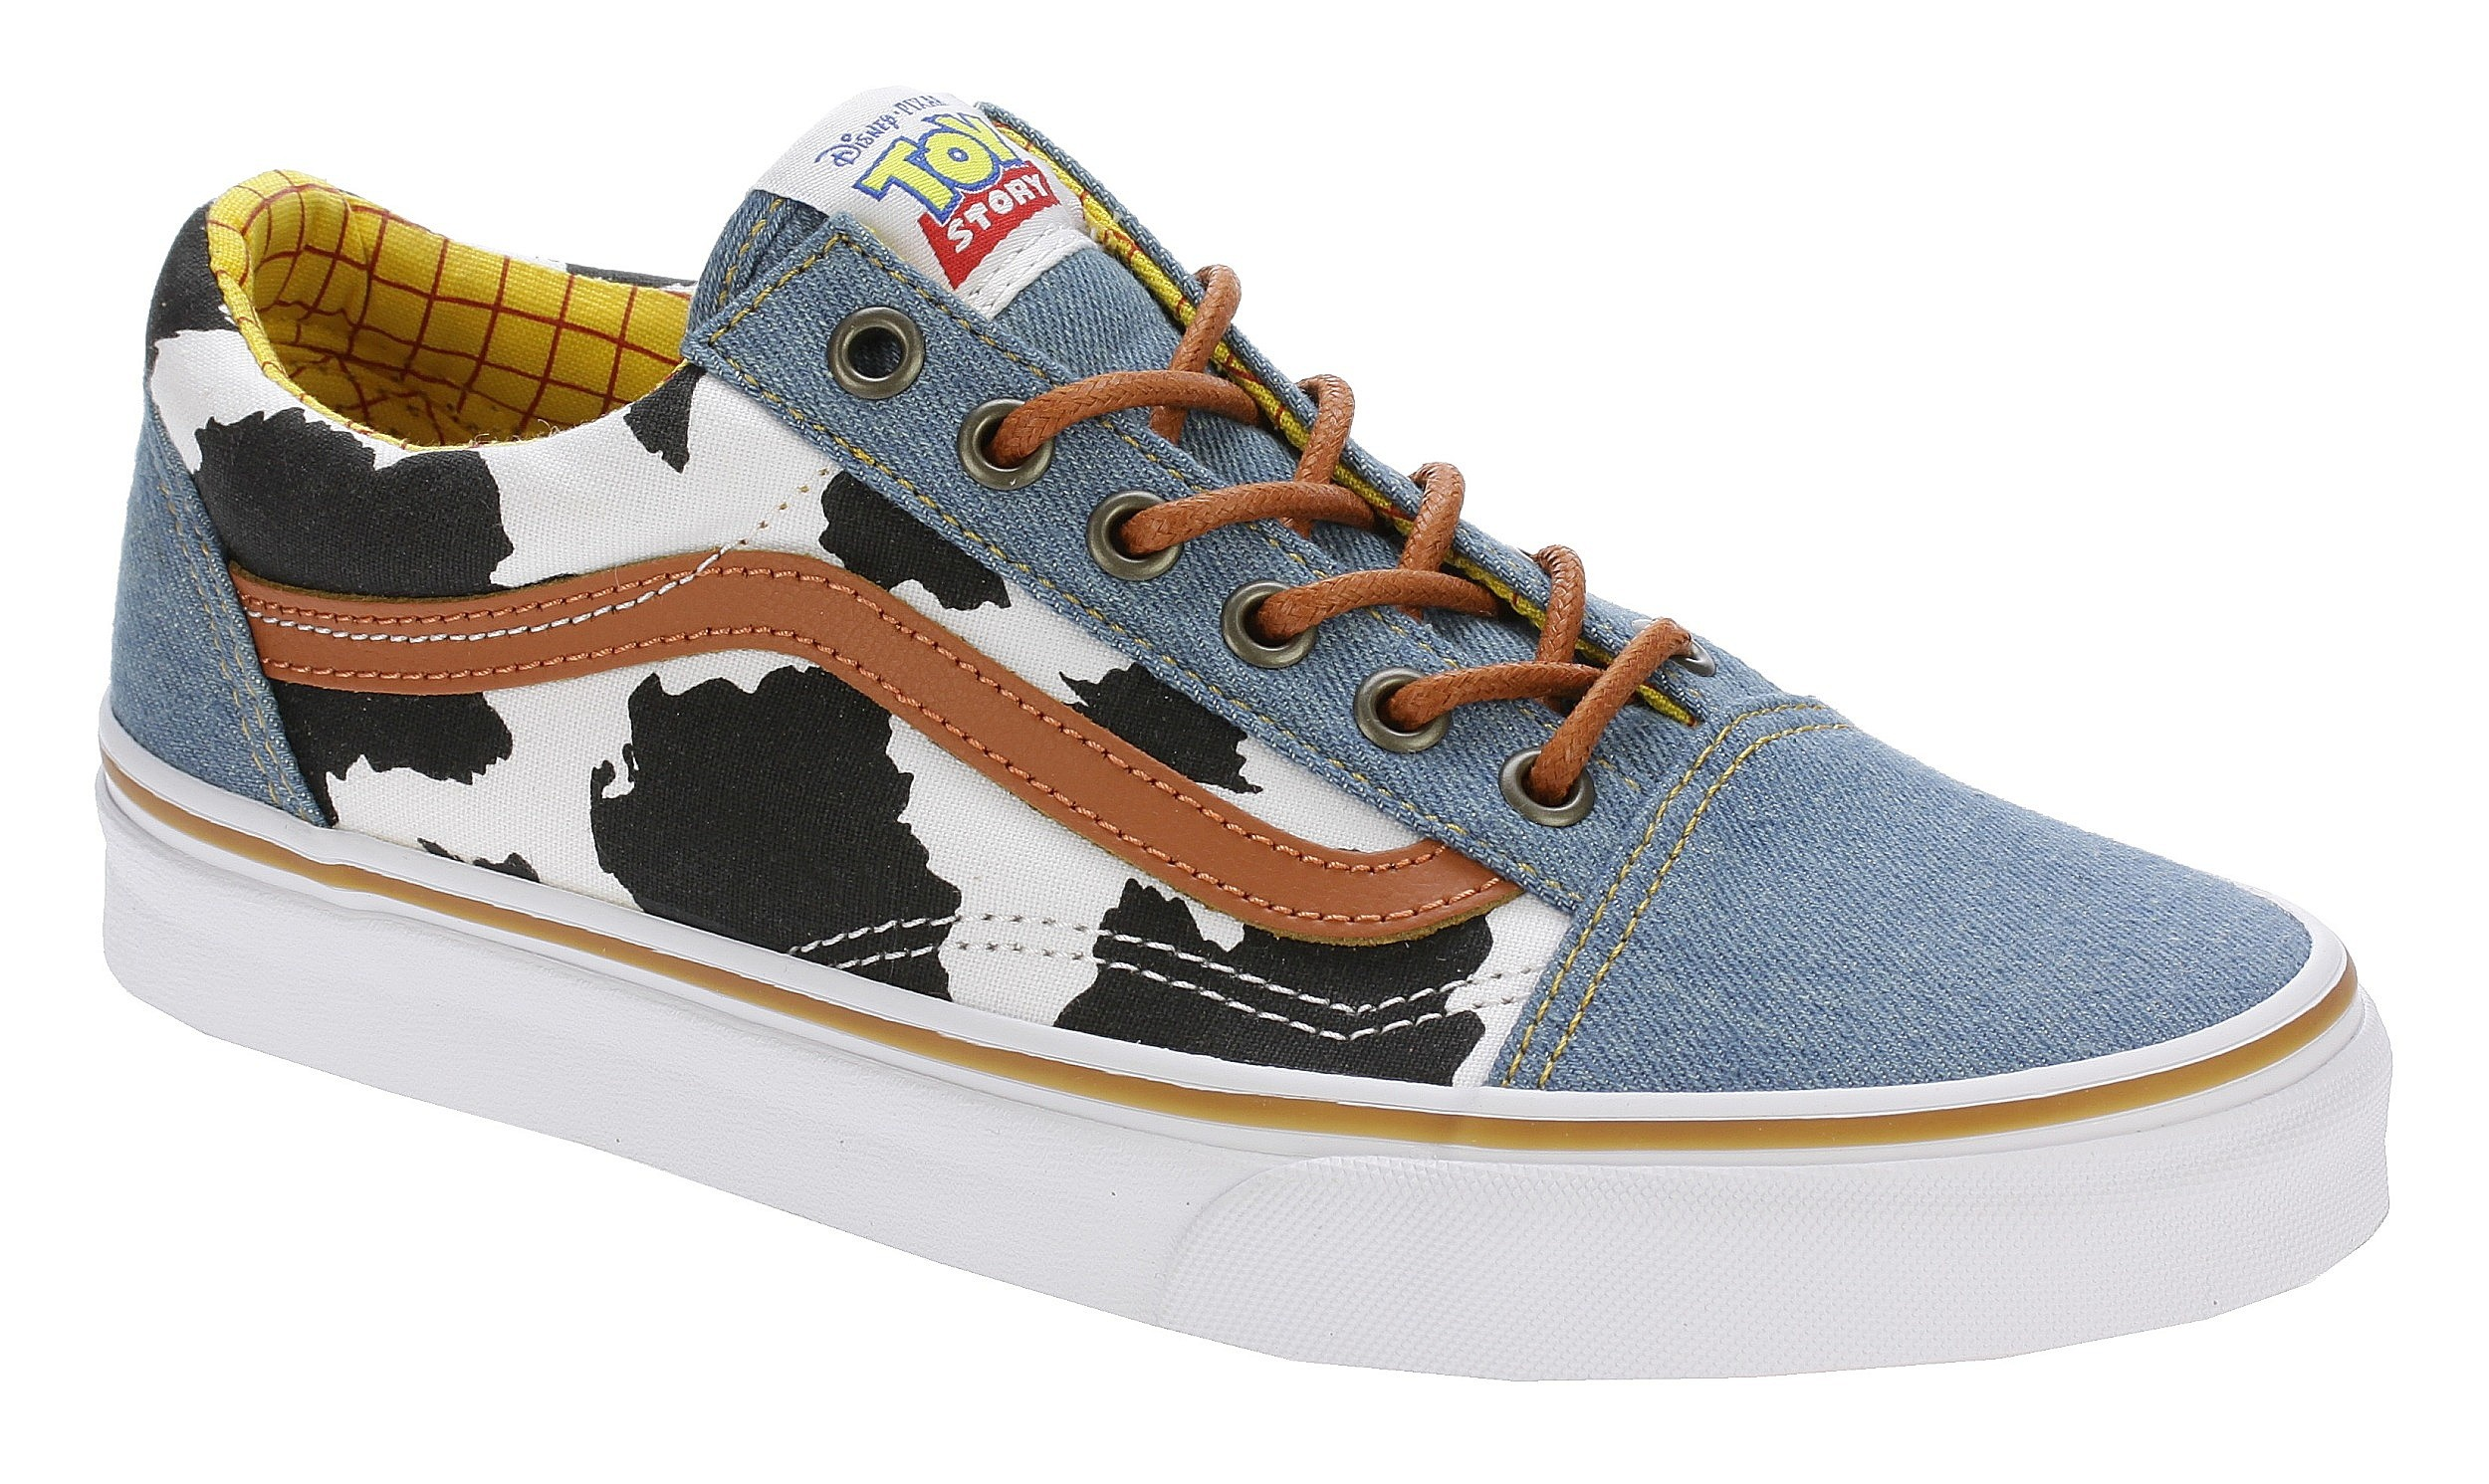 Vans Toy Story Woody granate